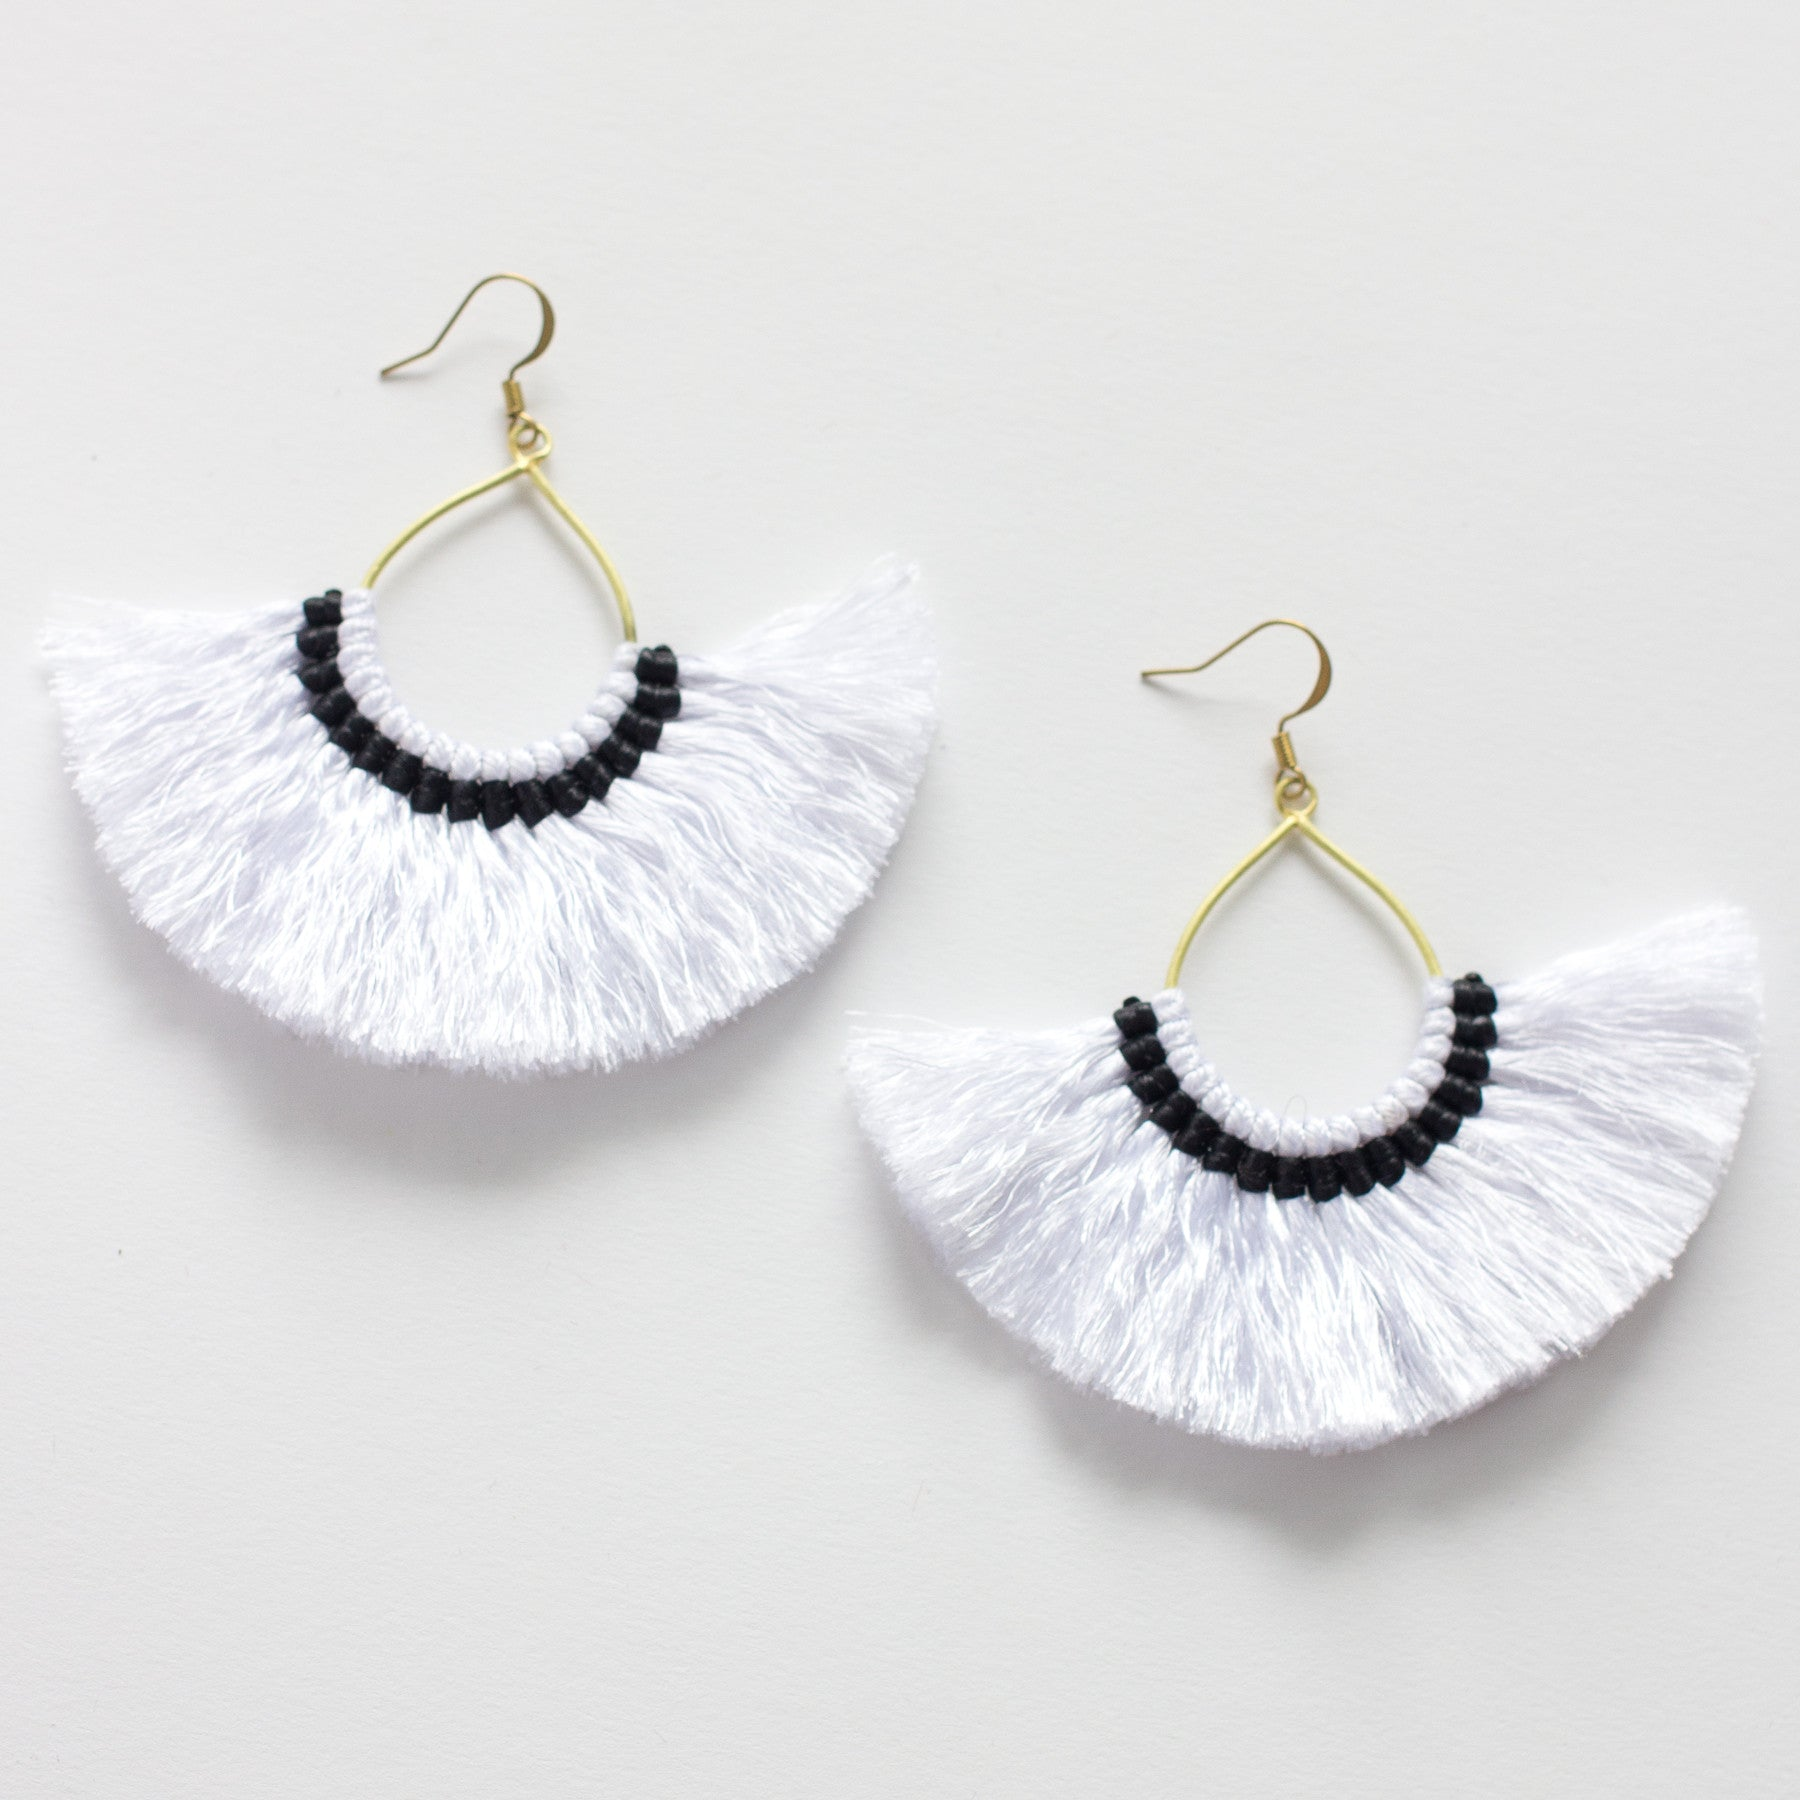 hoop boutique en tassle tassel black happiness earrings